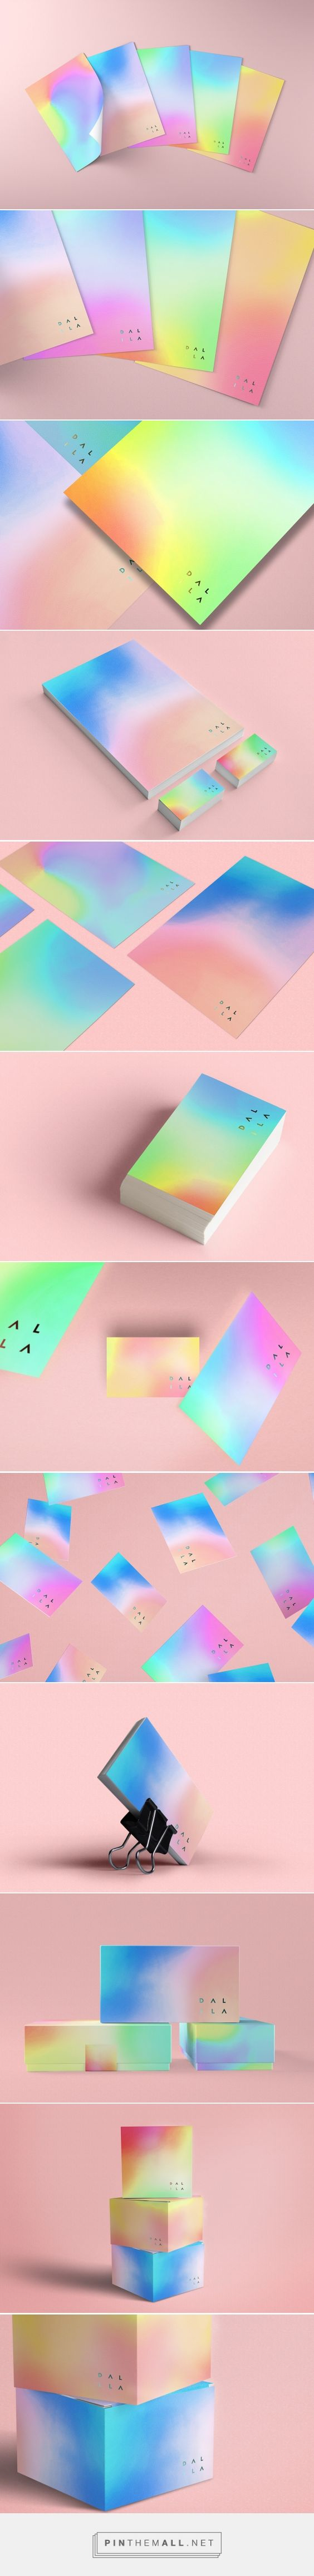 dans-ta-pub-creation-brand-identity-compilation-2